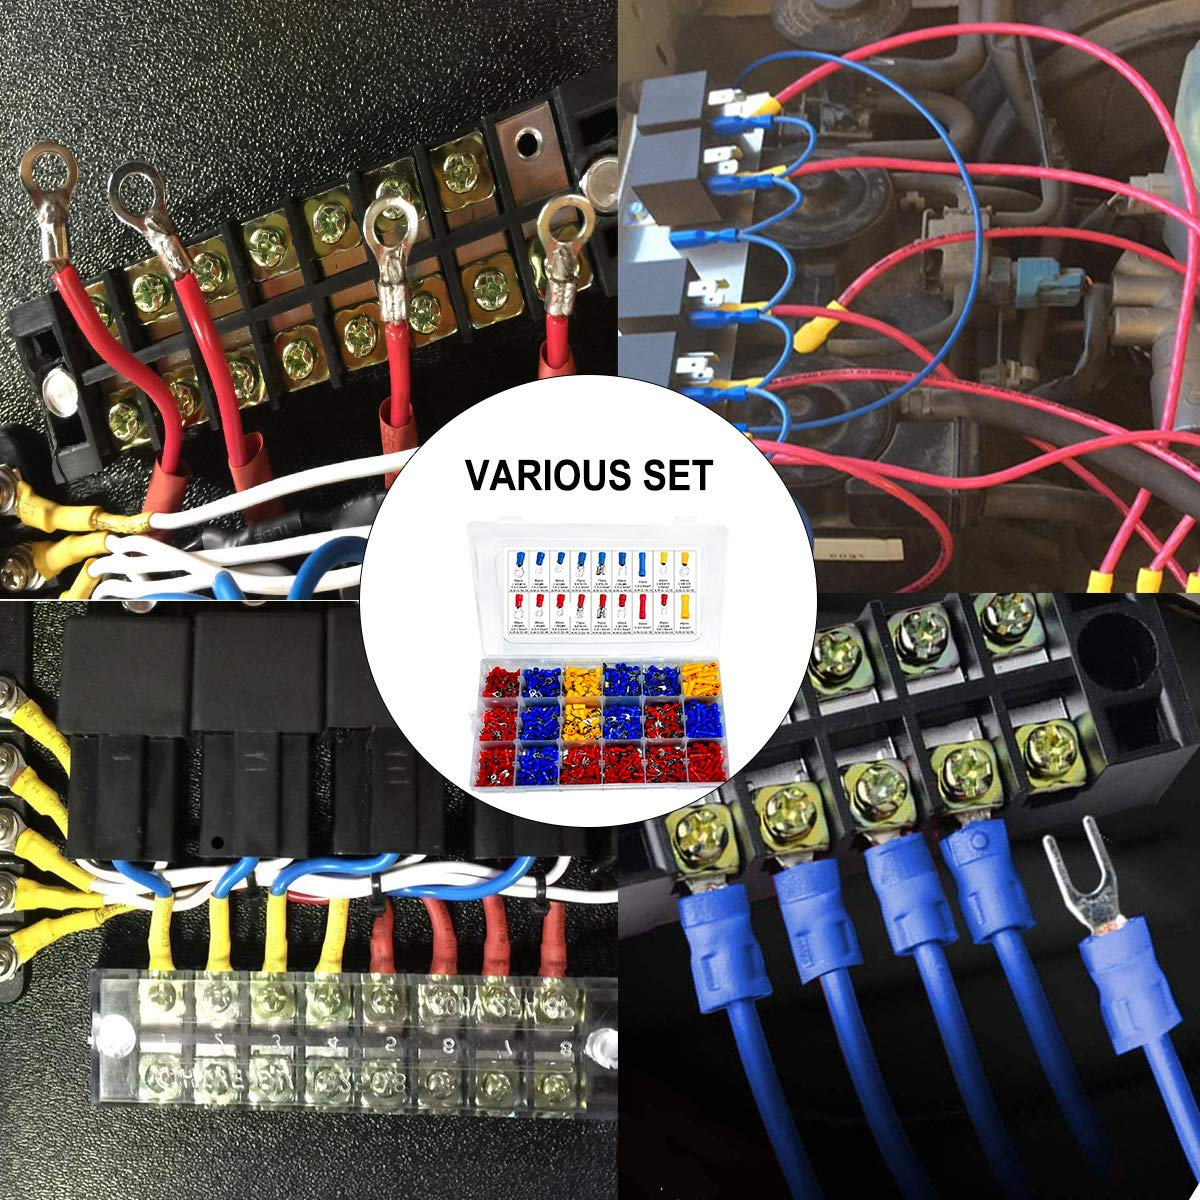 22-16//16-14//12-10 AWG Muhize Insulated Butt Spade Fork Ring Solderless Crimp Terminals Assortment Set 1200Pcs Mixed Assorted Lug Kit Quick Disconnect Electrical Wire Connectors Kit